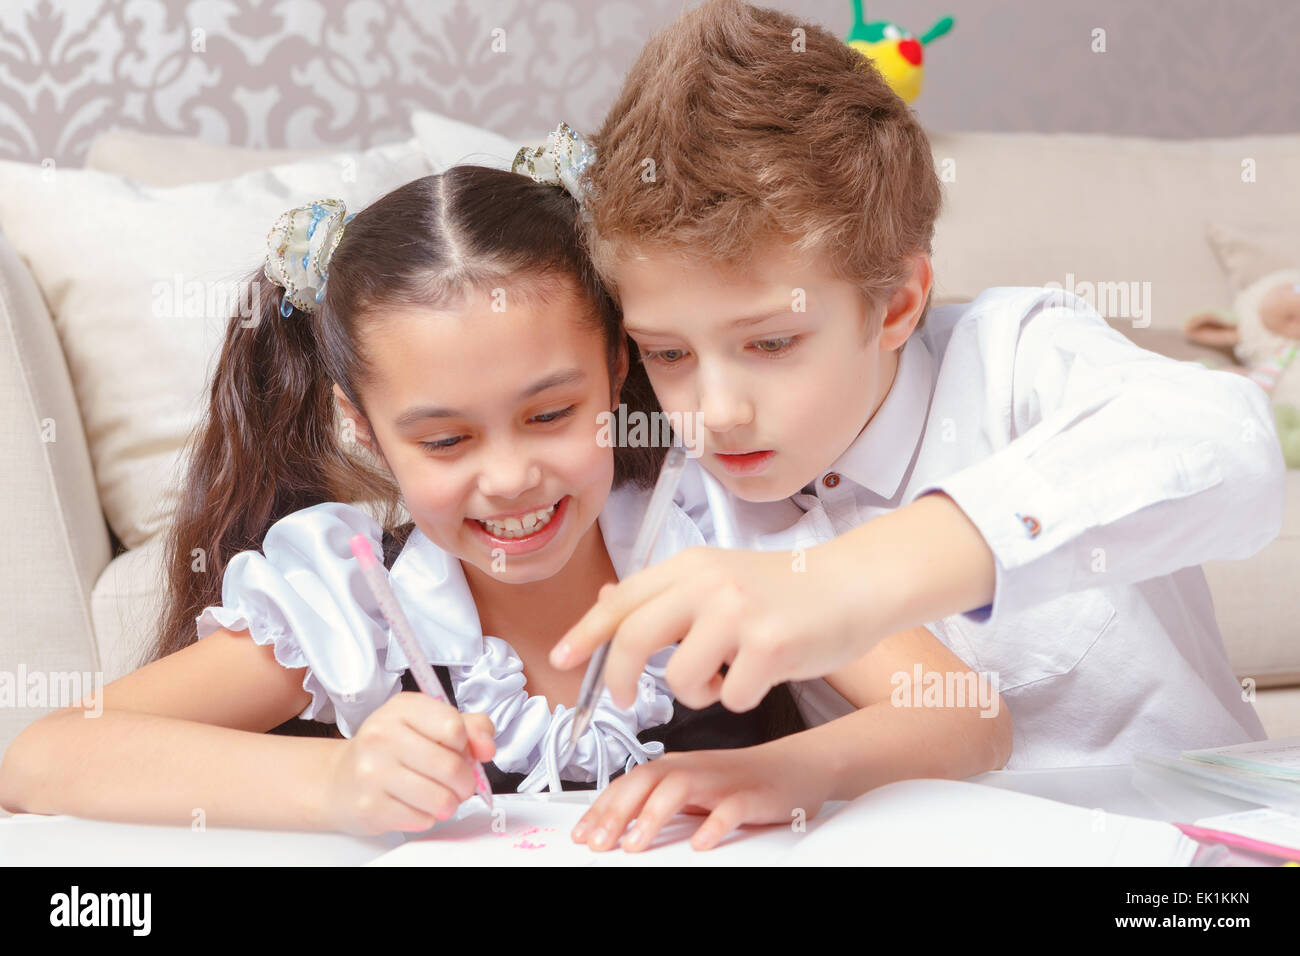 Kindergarten Classroom Boy Girl Stock Photos Amp Kindergarten Classroom Boy Girl Stock Images